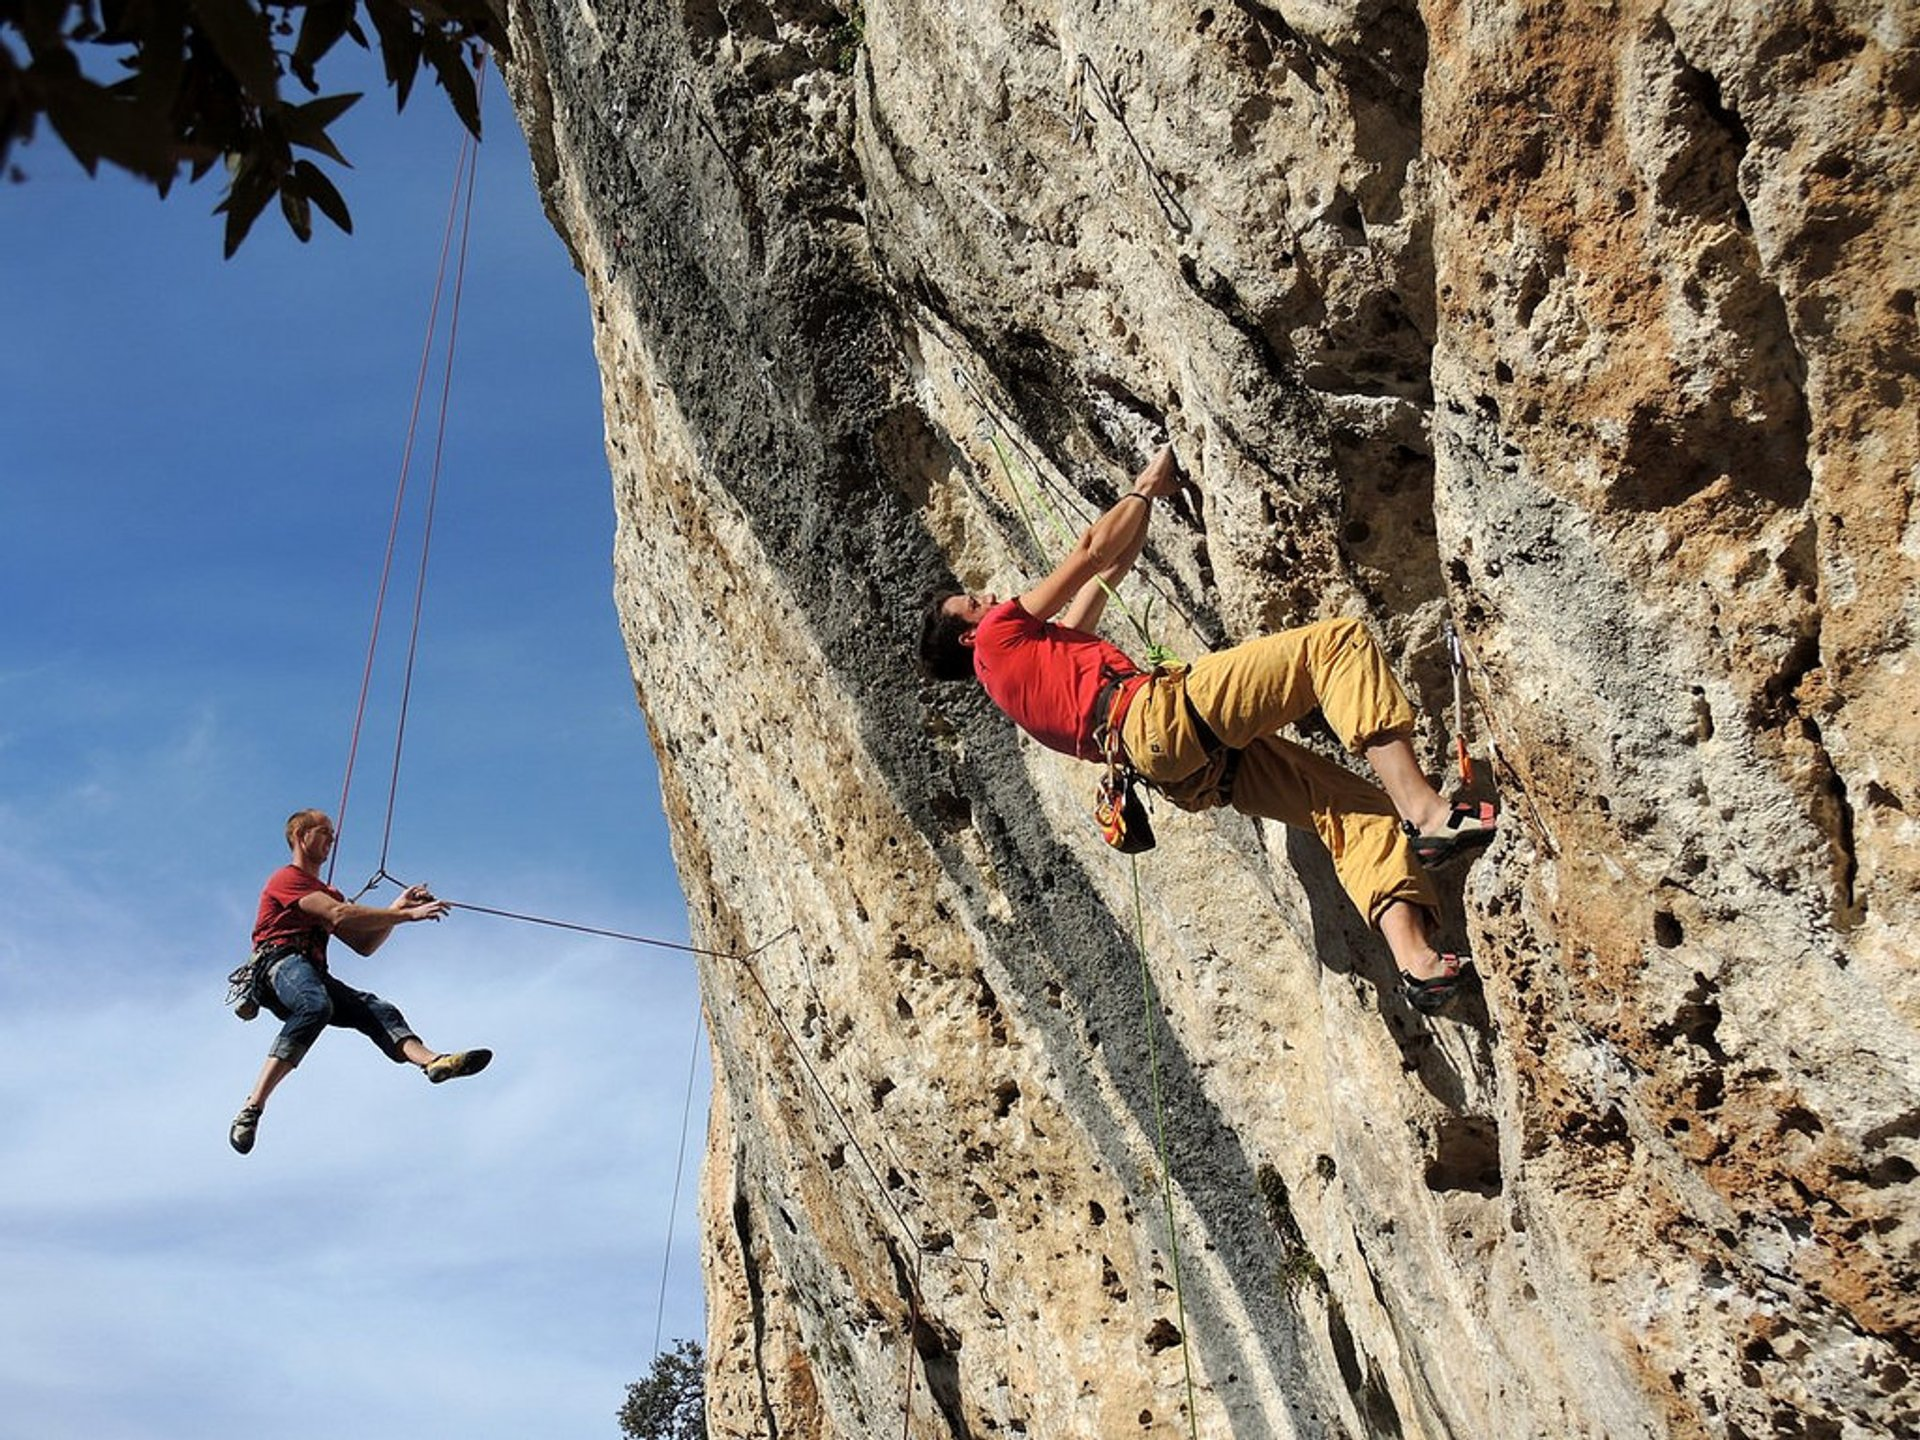 Rock Climbing in Italy 2020 - Best Time